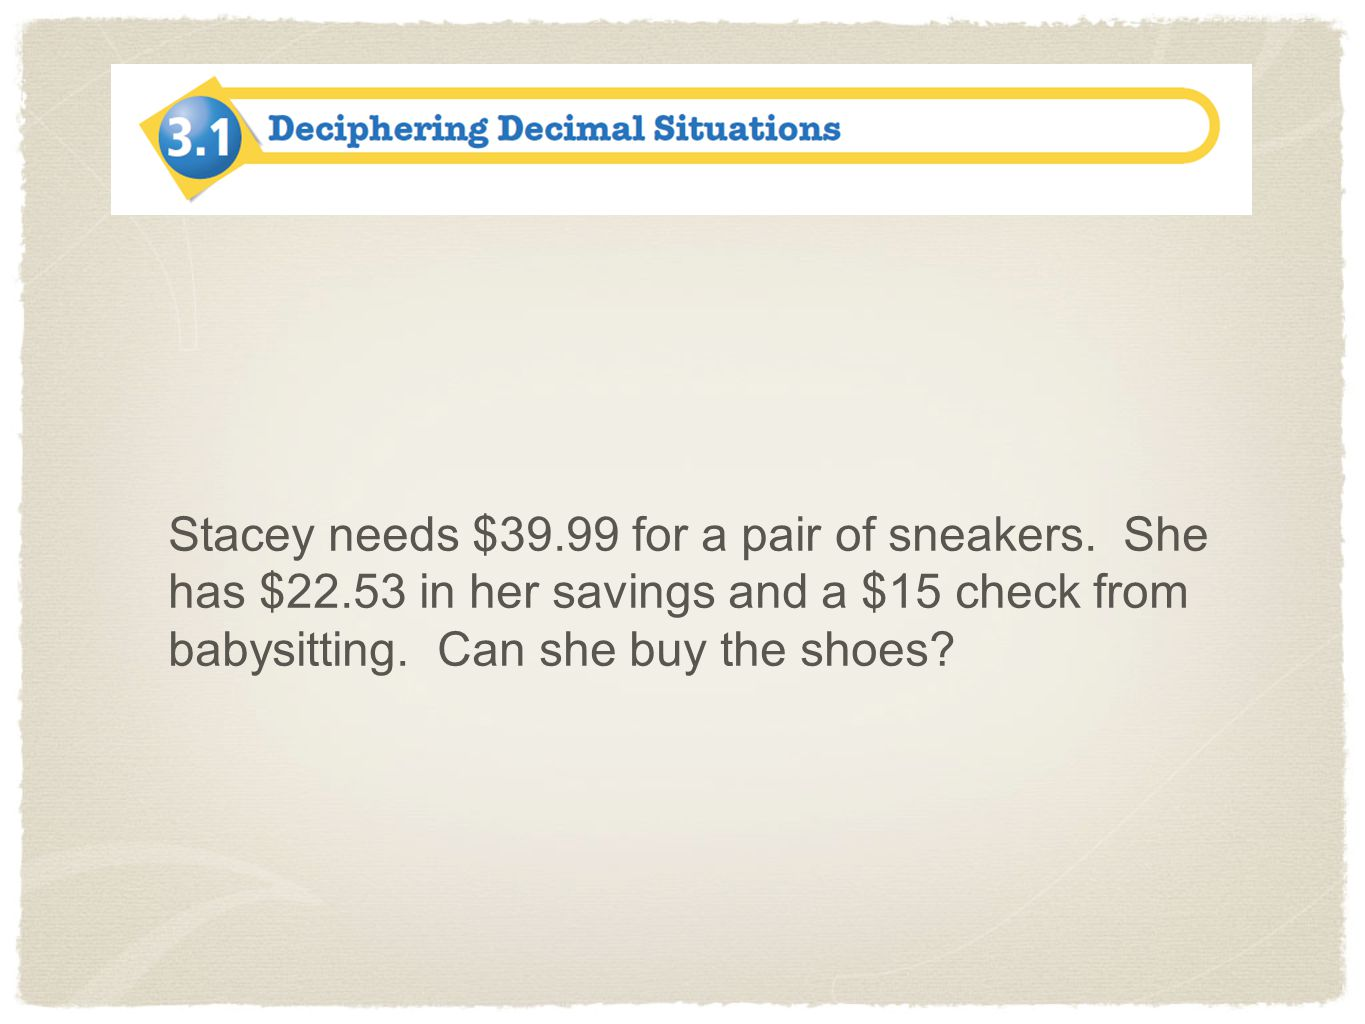 Stacey needs $39. 99 for a pair of sneakers. She has $22